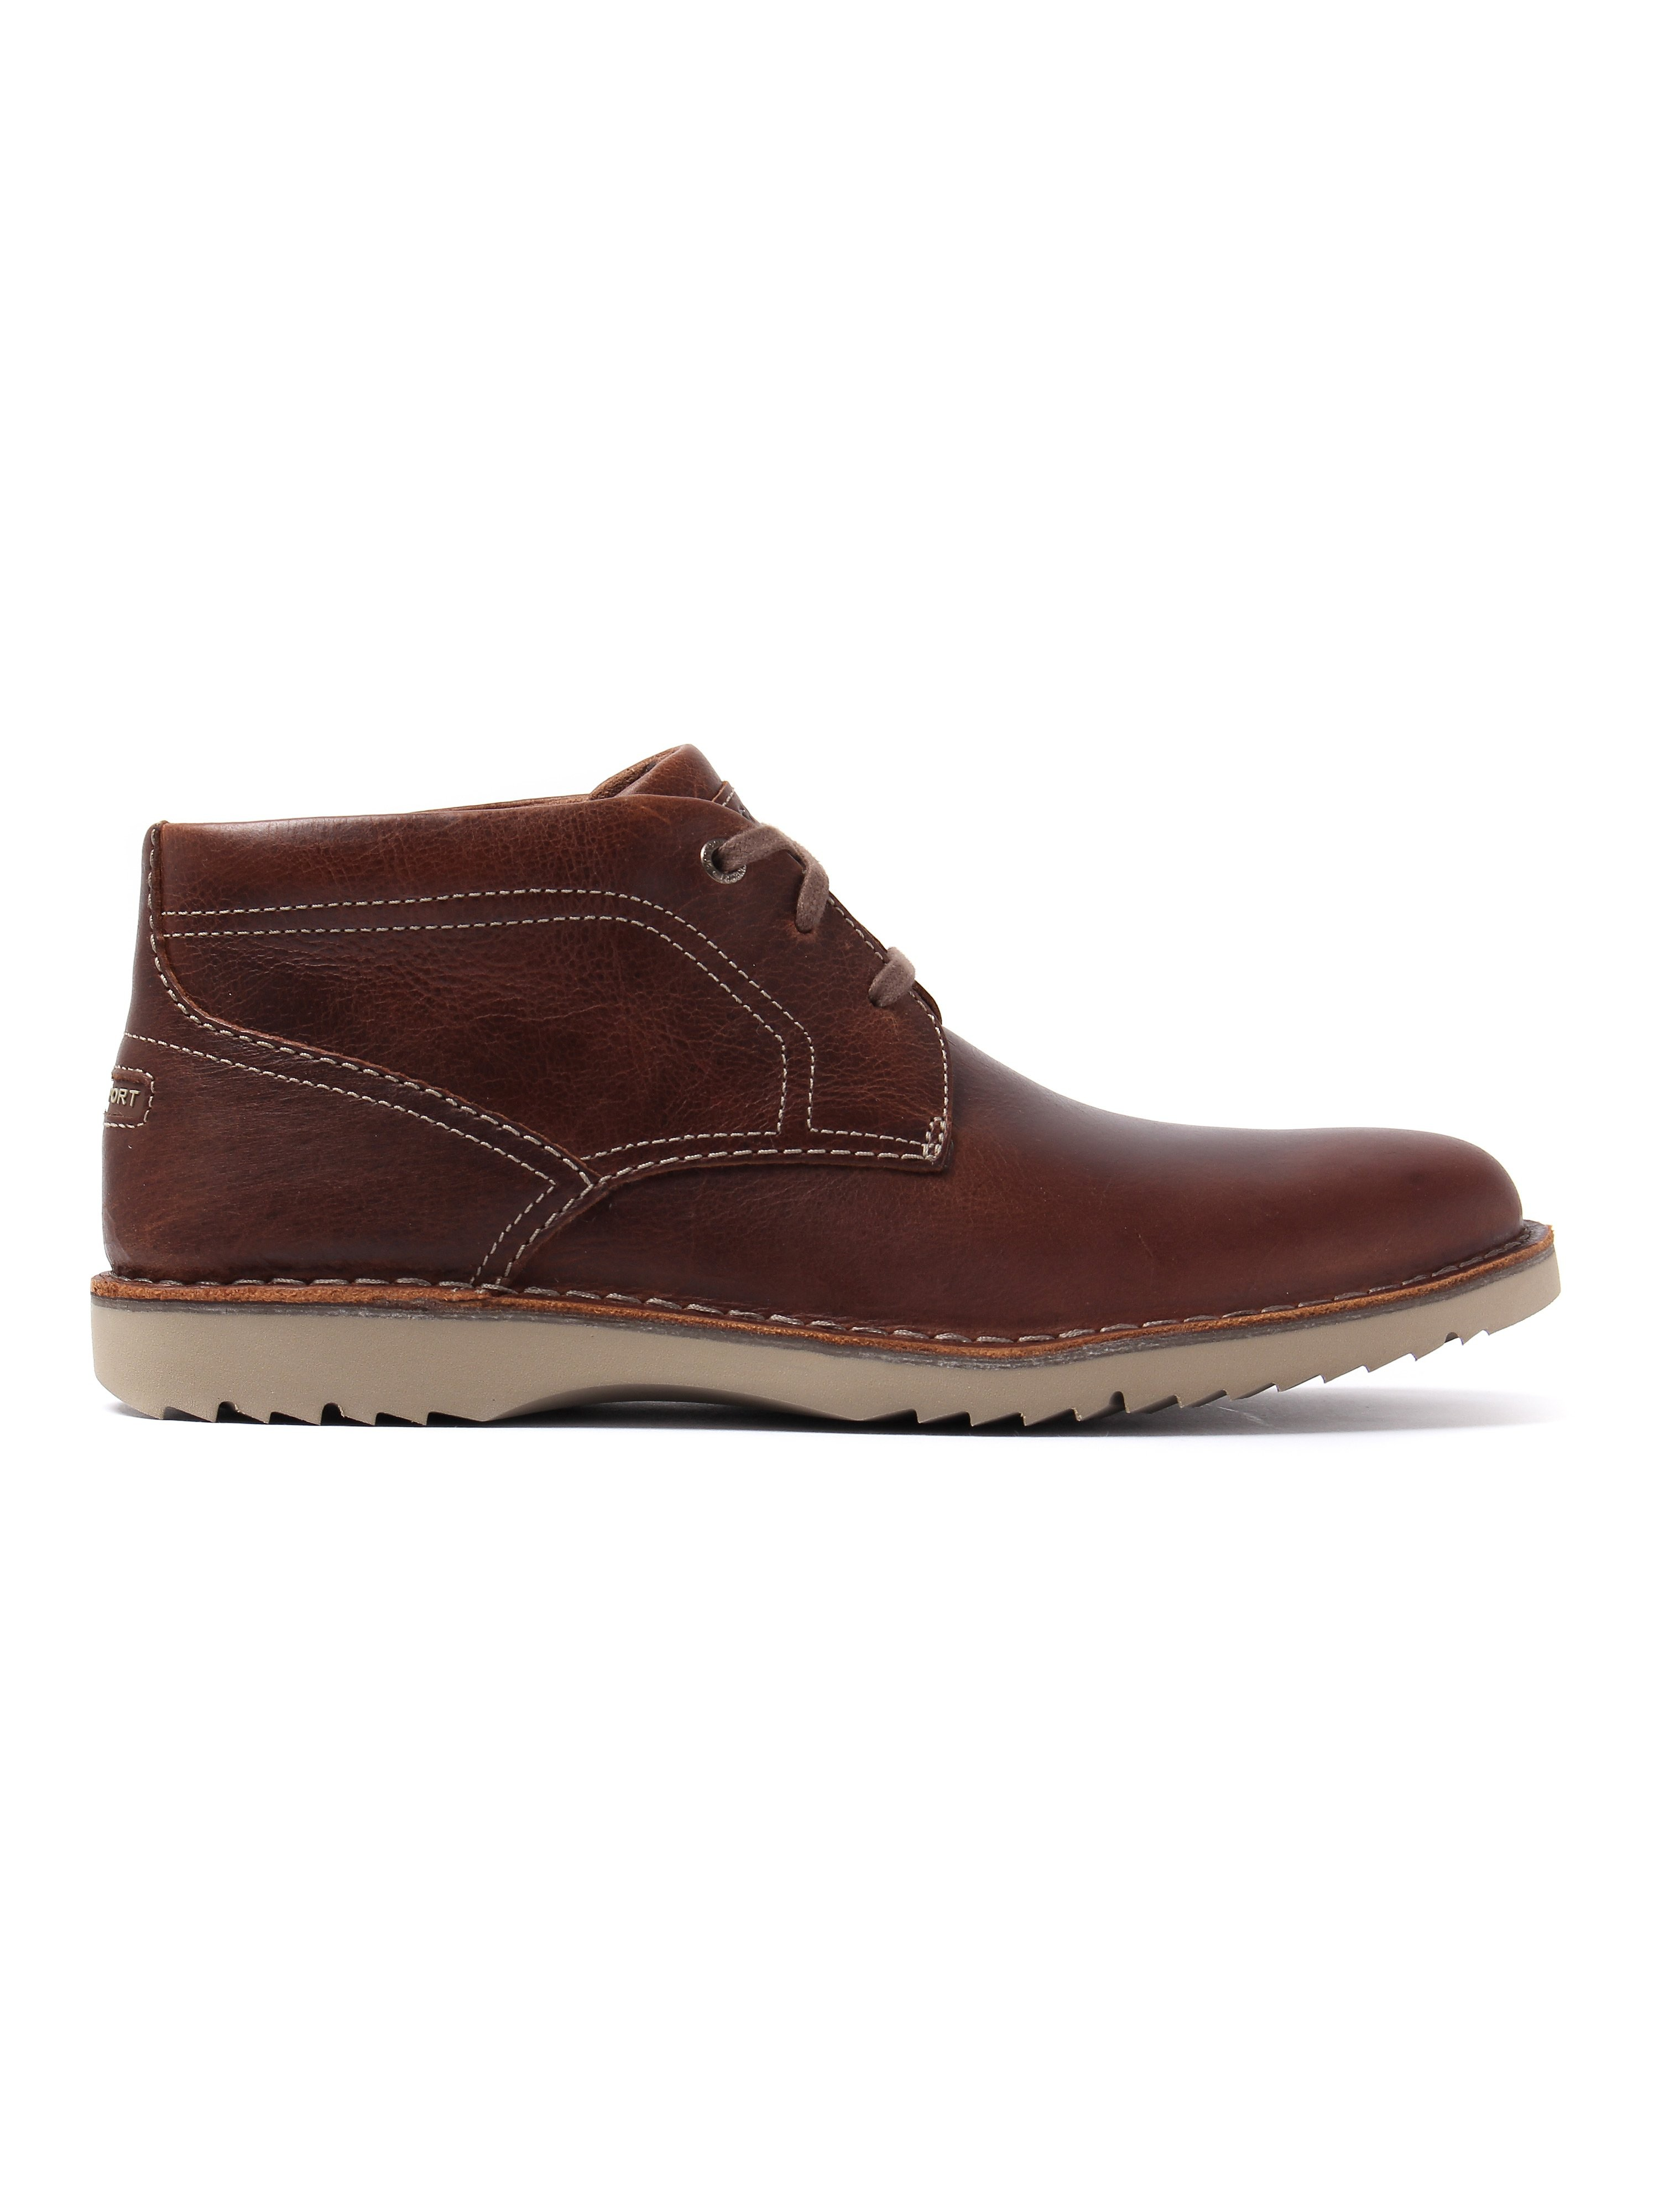 Rockport Men's Cabot Leather Chukka Boots - Brown